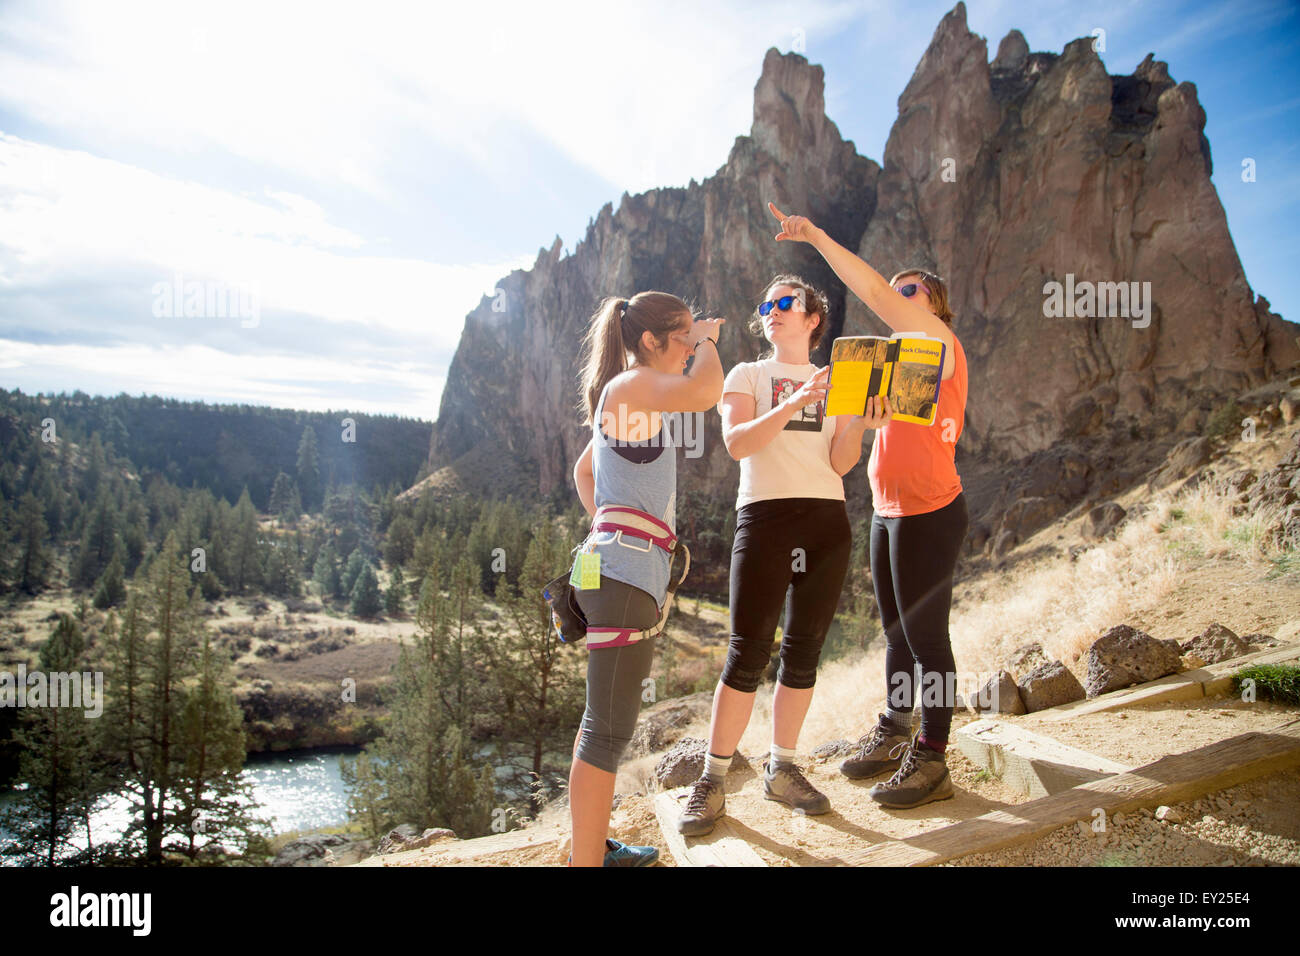 Hikers looking at view, Smith Rock State Park, Oregon, US - Stock Image